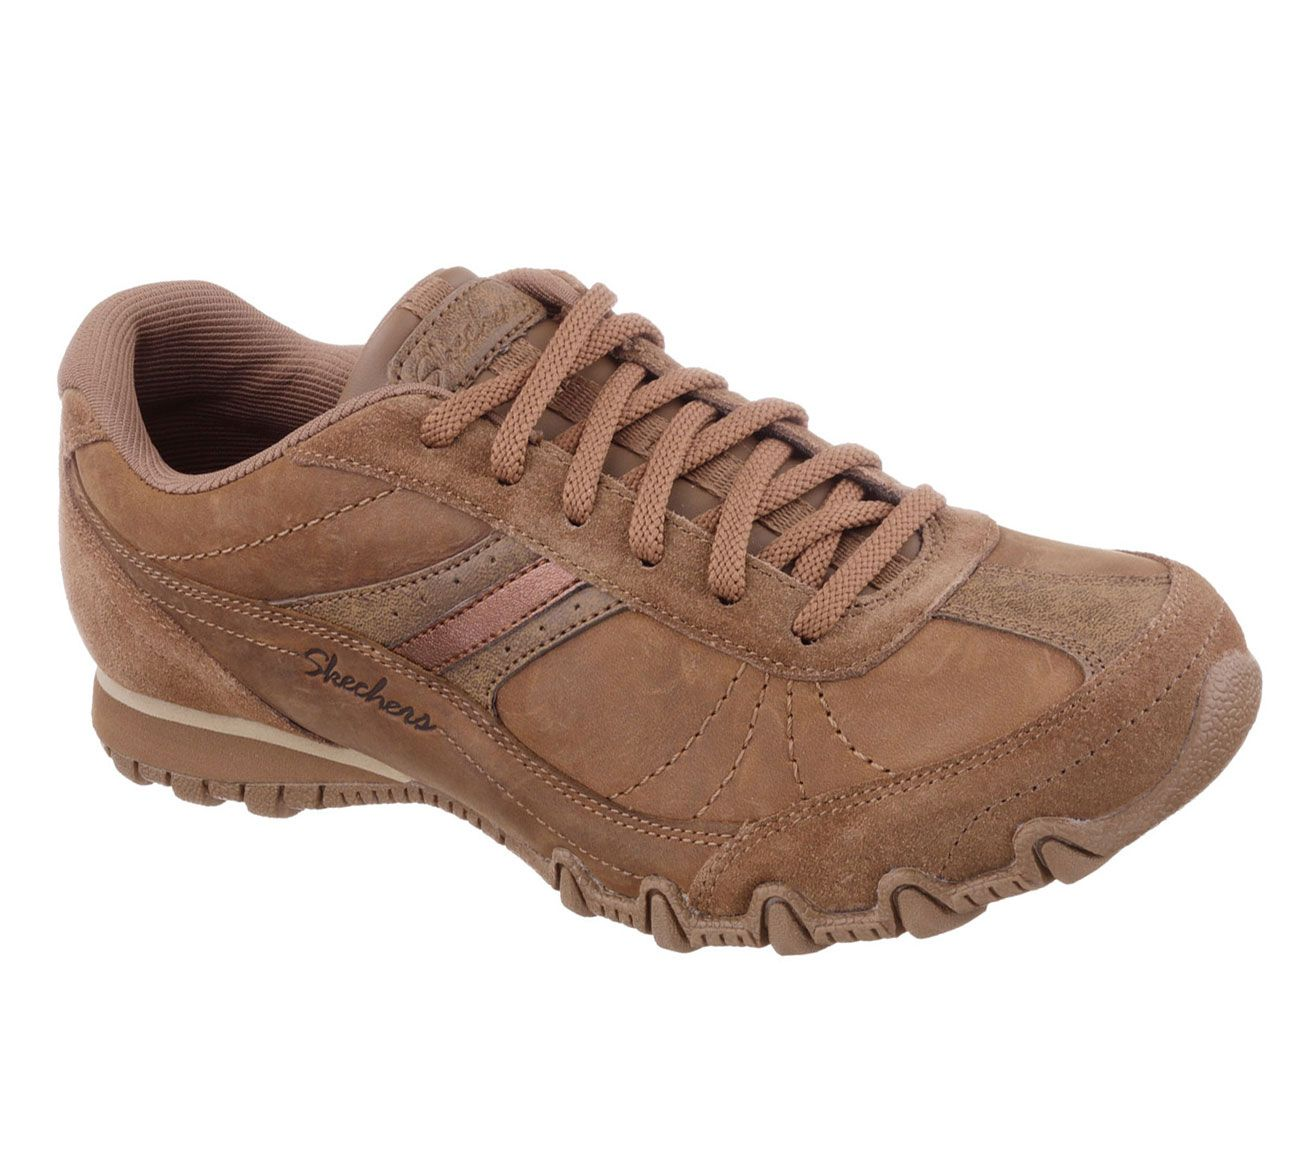 47cd021fe592 Dynamic style and comfort with the SKECHERS Relaxed Fit